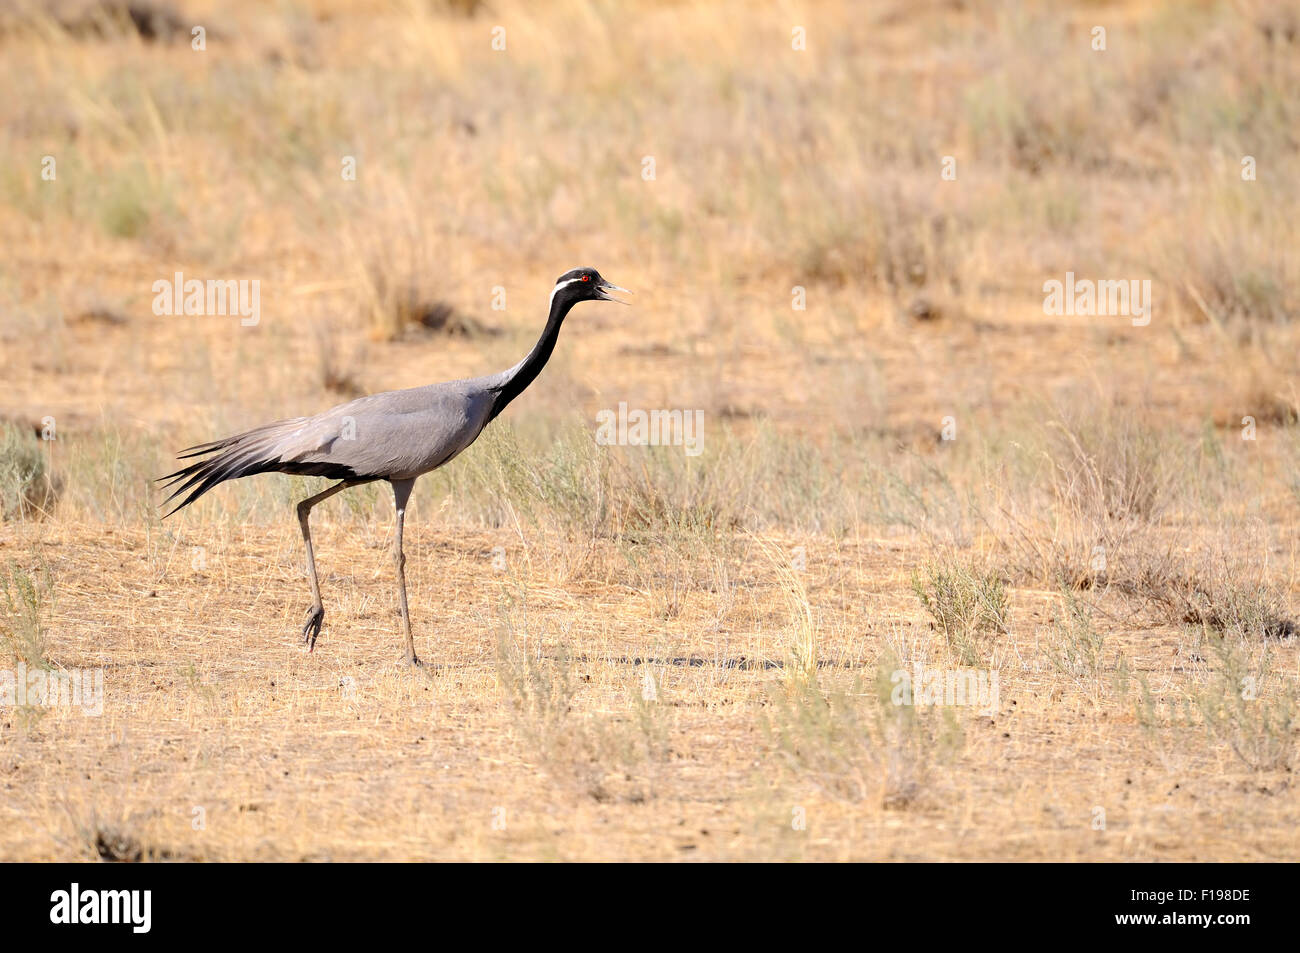 Demoiselle crane walking in hot steppe Stock Photo